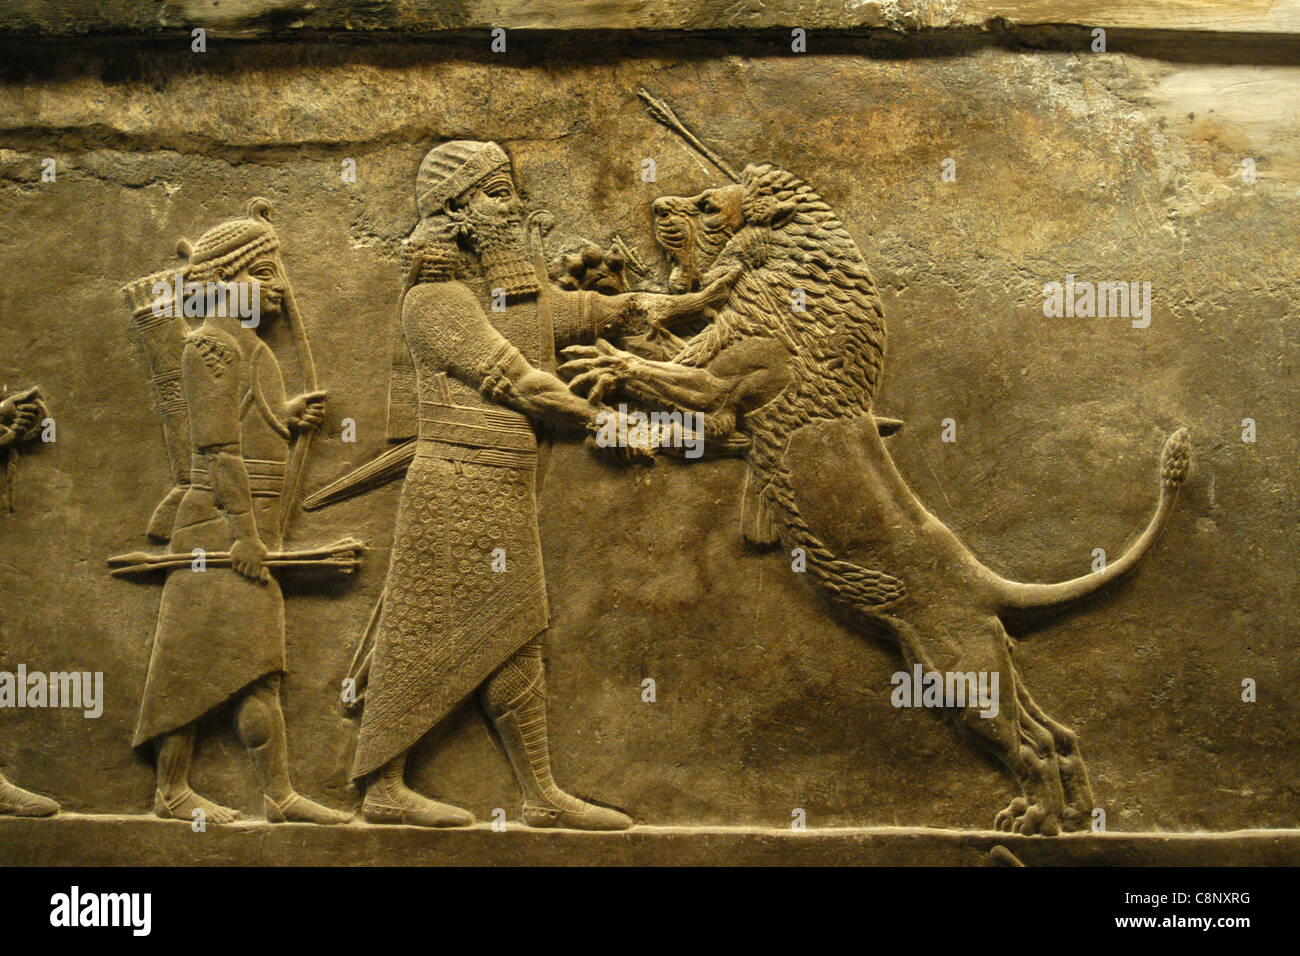 lion hunt of ashurbanipal Ashurbanipal slitting the throat of a lion from his chariot (detail), ashurbanipal hunting lions, gypsum hall relief from the north palace, ninevah dr senta german, assyrian art, an introduction, in smarthistory, august 8, 2015, accessed april 18.